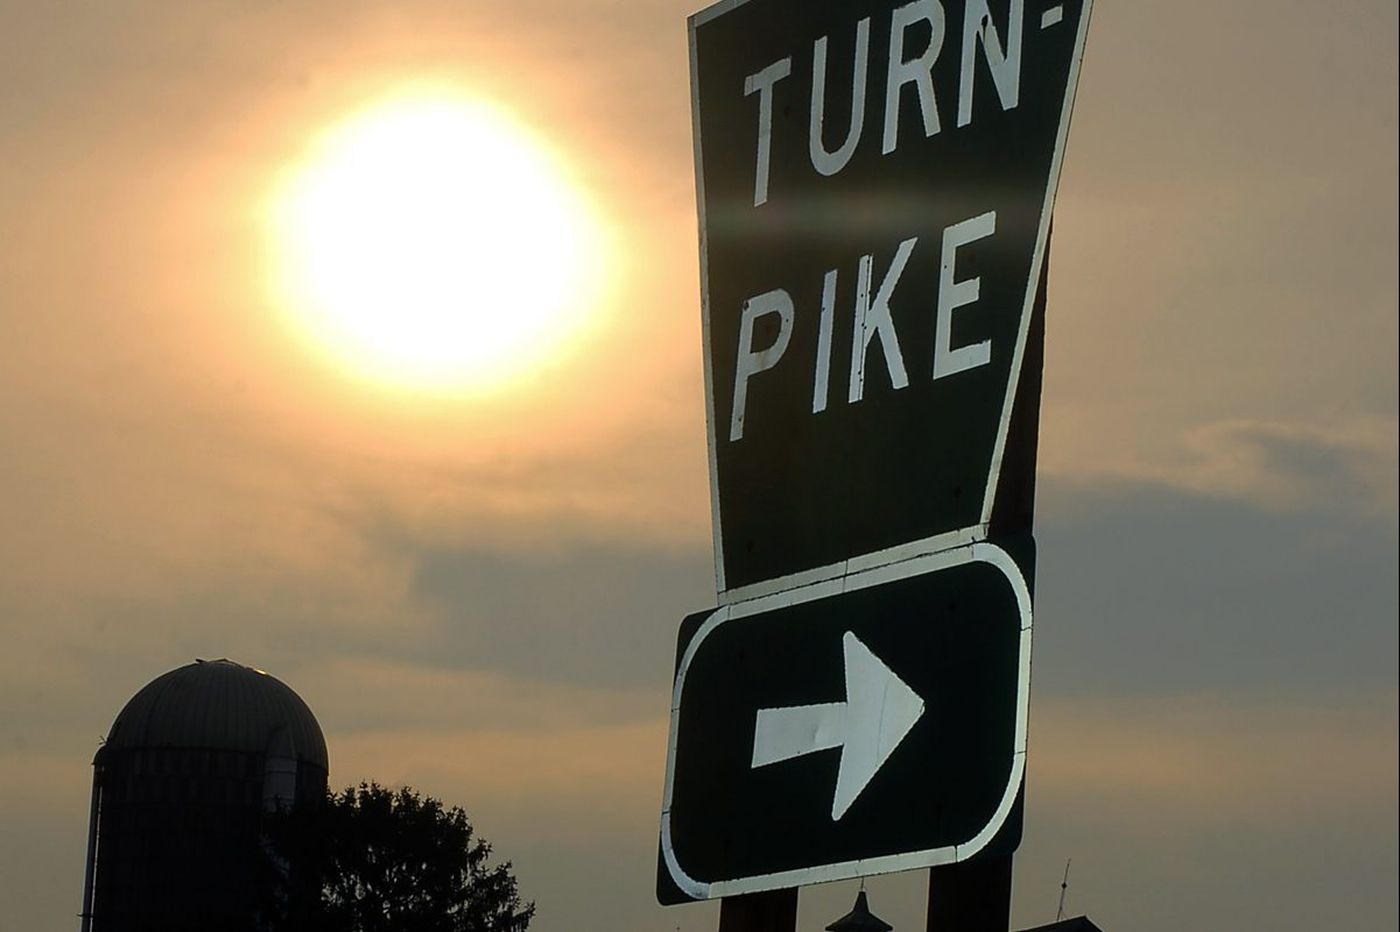 After the scandal: Pa. Turnpike settles with whistleblower it fired, contractor he warned about